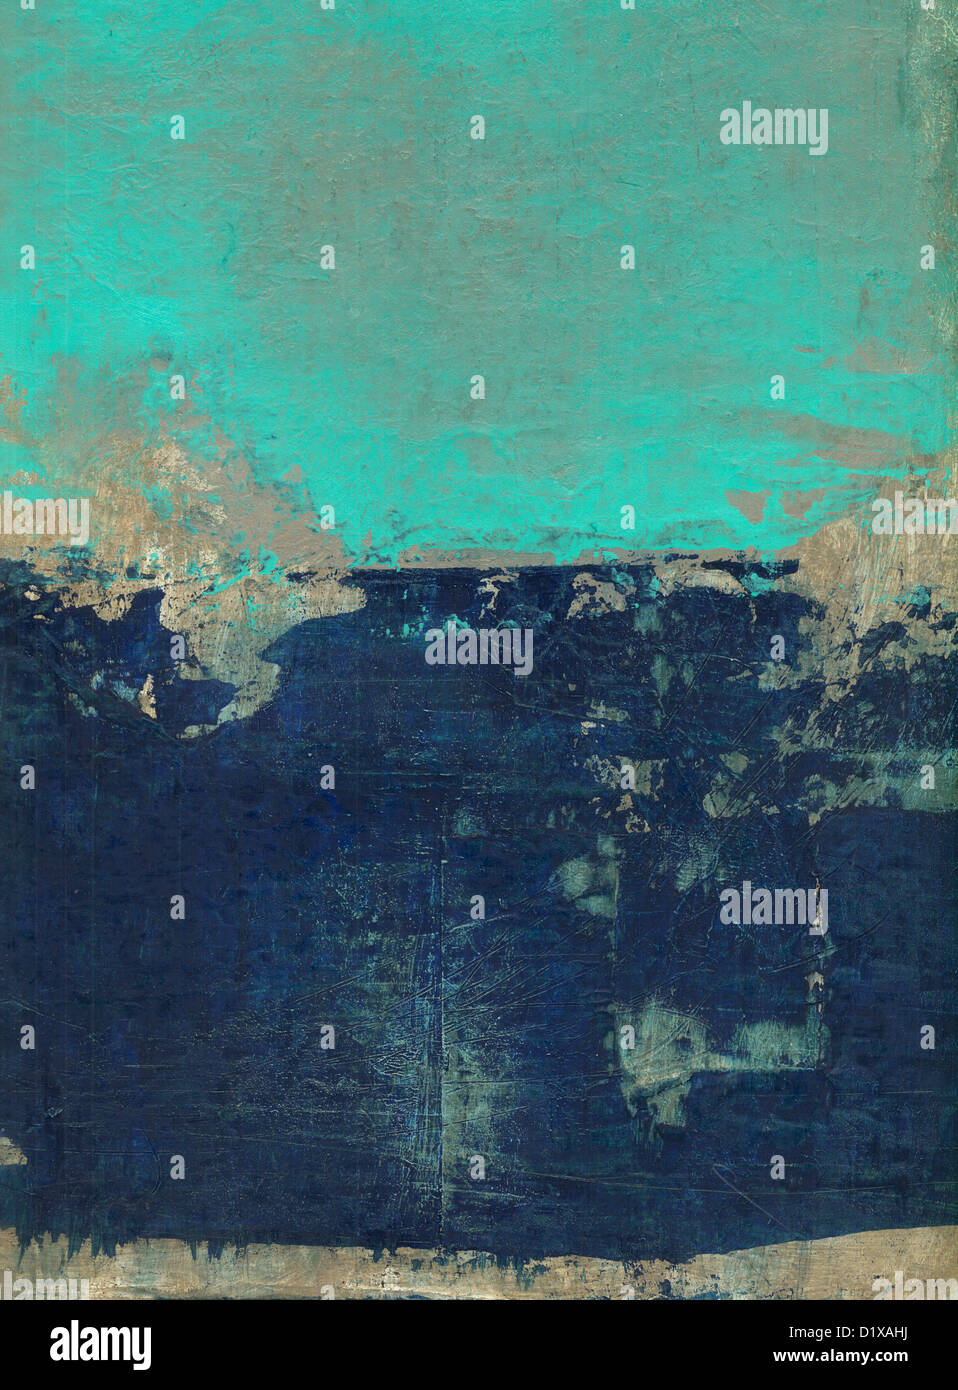 Abstract painting with blue, turquoise and brown tones. - Stock Image